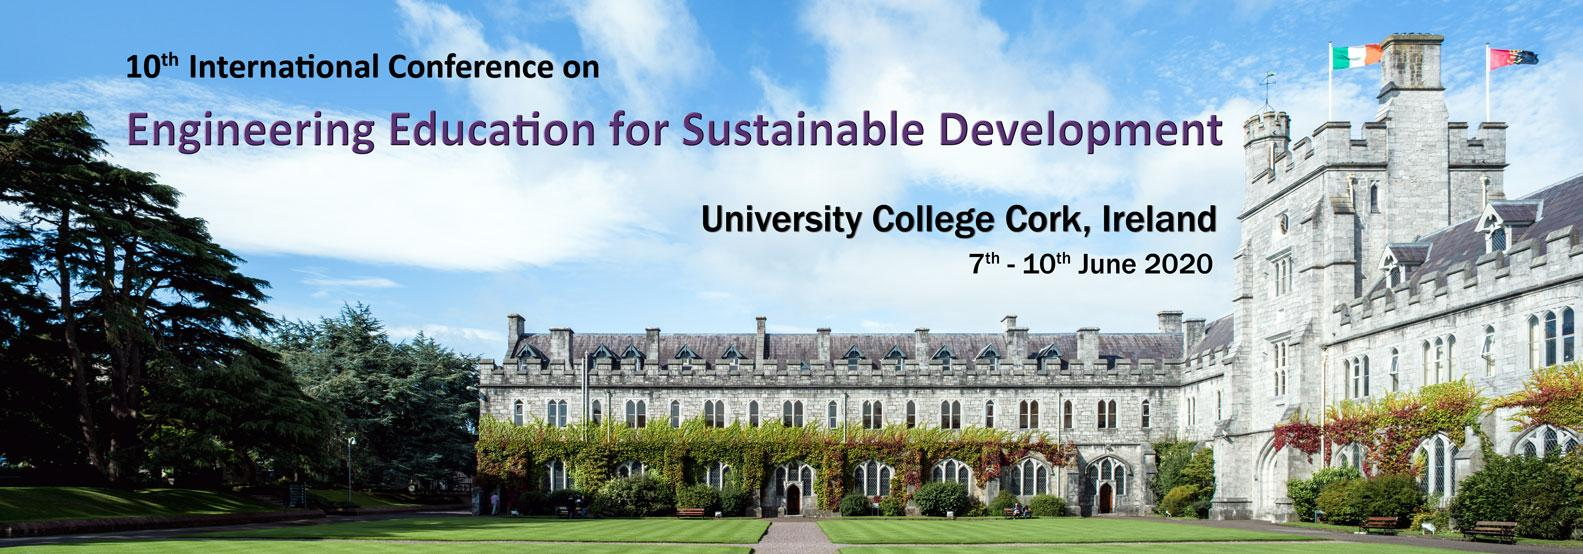 Engineering Education for Sustainable Development Conference 2020